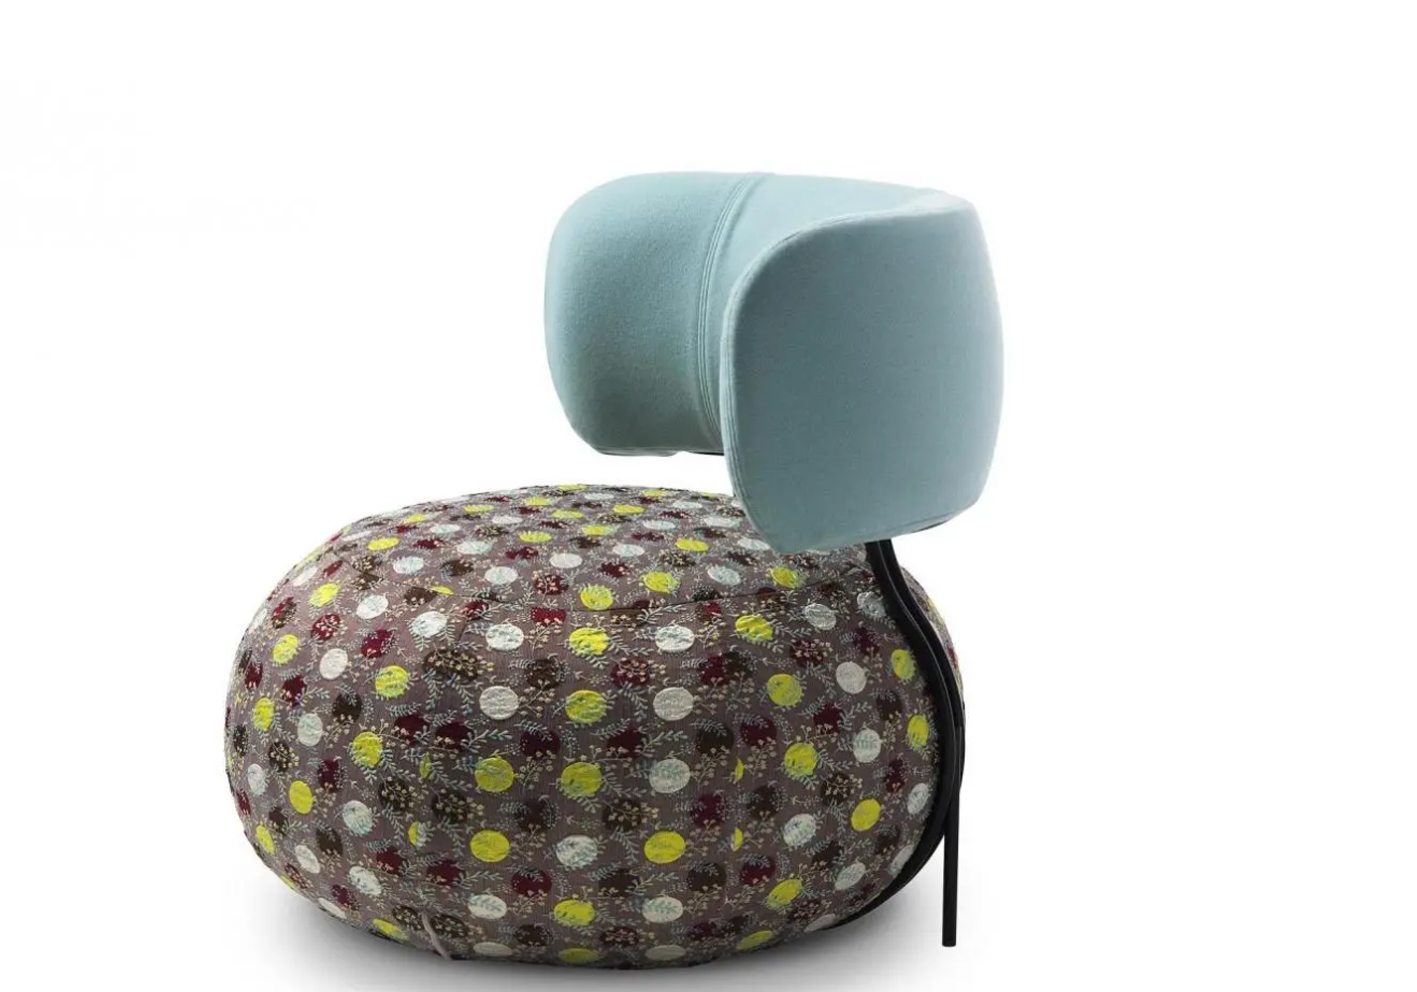 Just as characterful is Saba Italia's Baby Geo, a wholly rounded seat with an internal metal-rod structure that supports a comfortably curved, padded backrest.